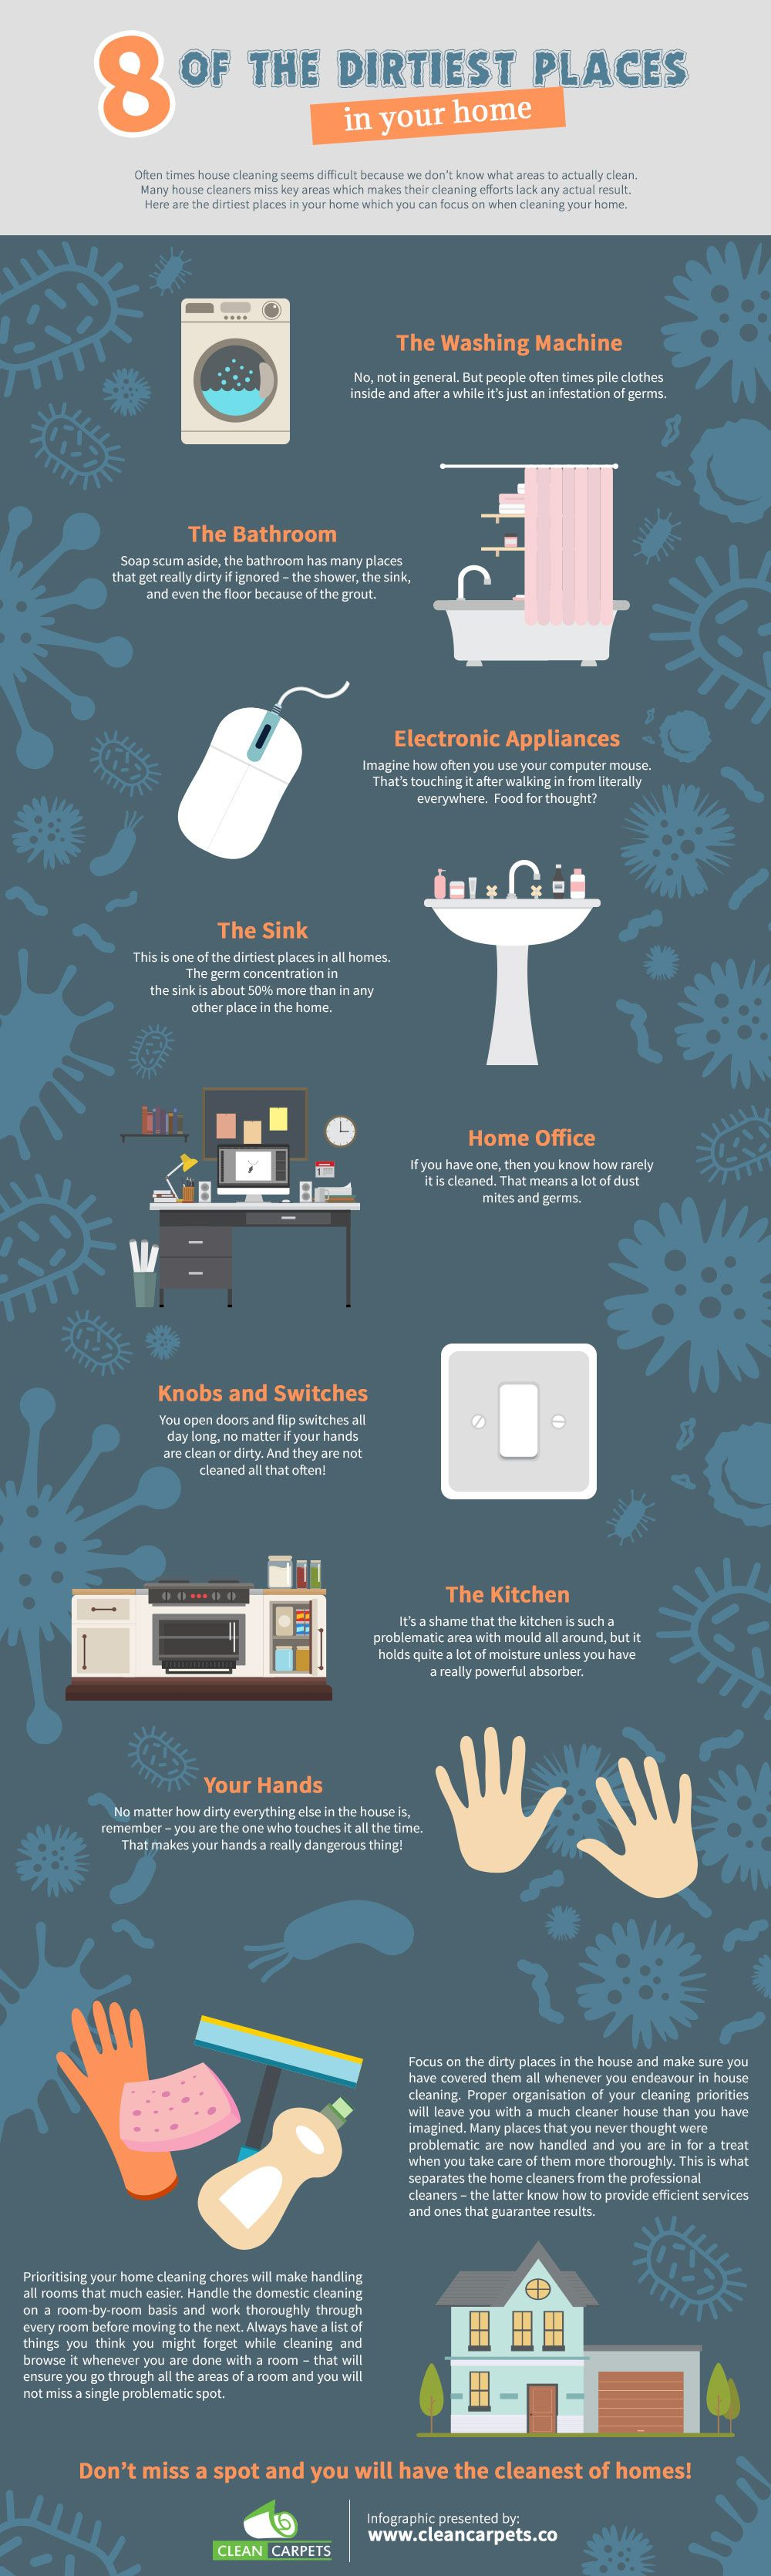 8 Surprisingly Dirty Places in Your Home